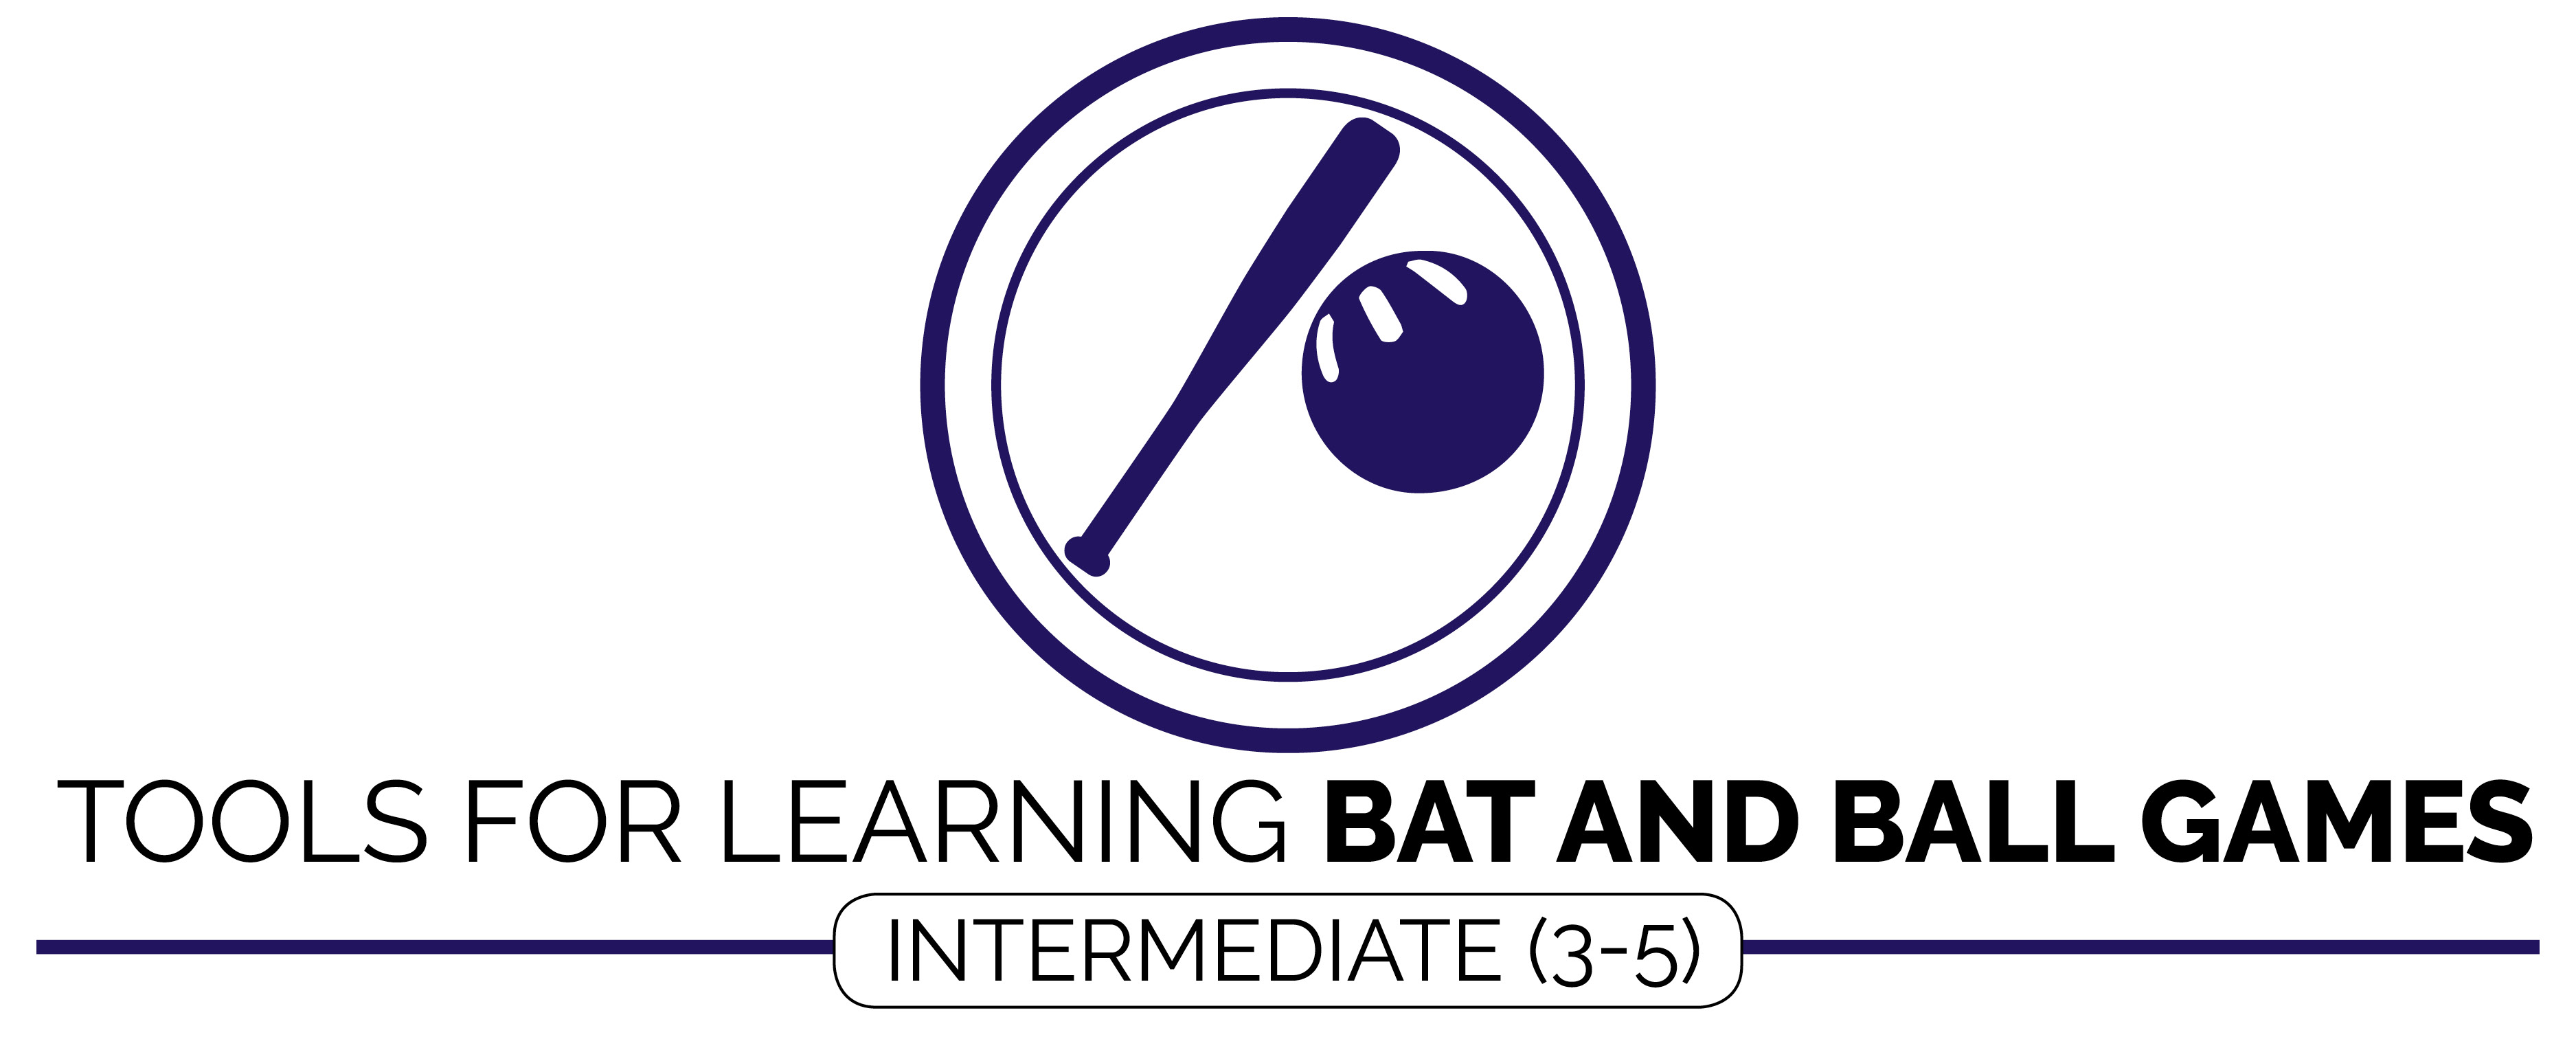 Bat and Ball Games(Intermediate 3-5)